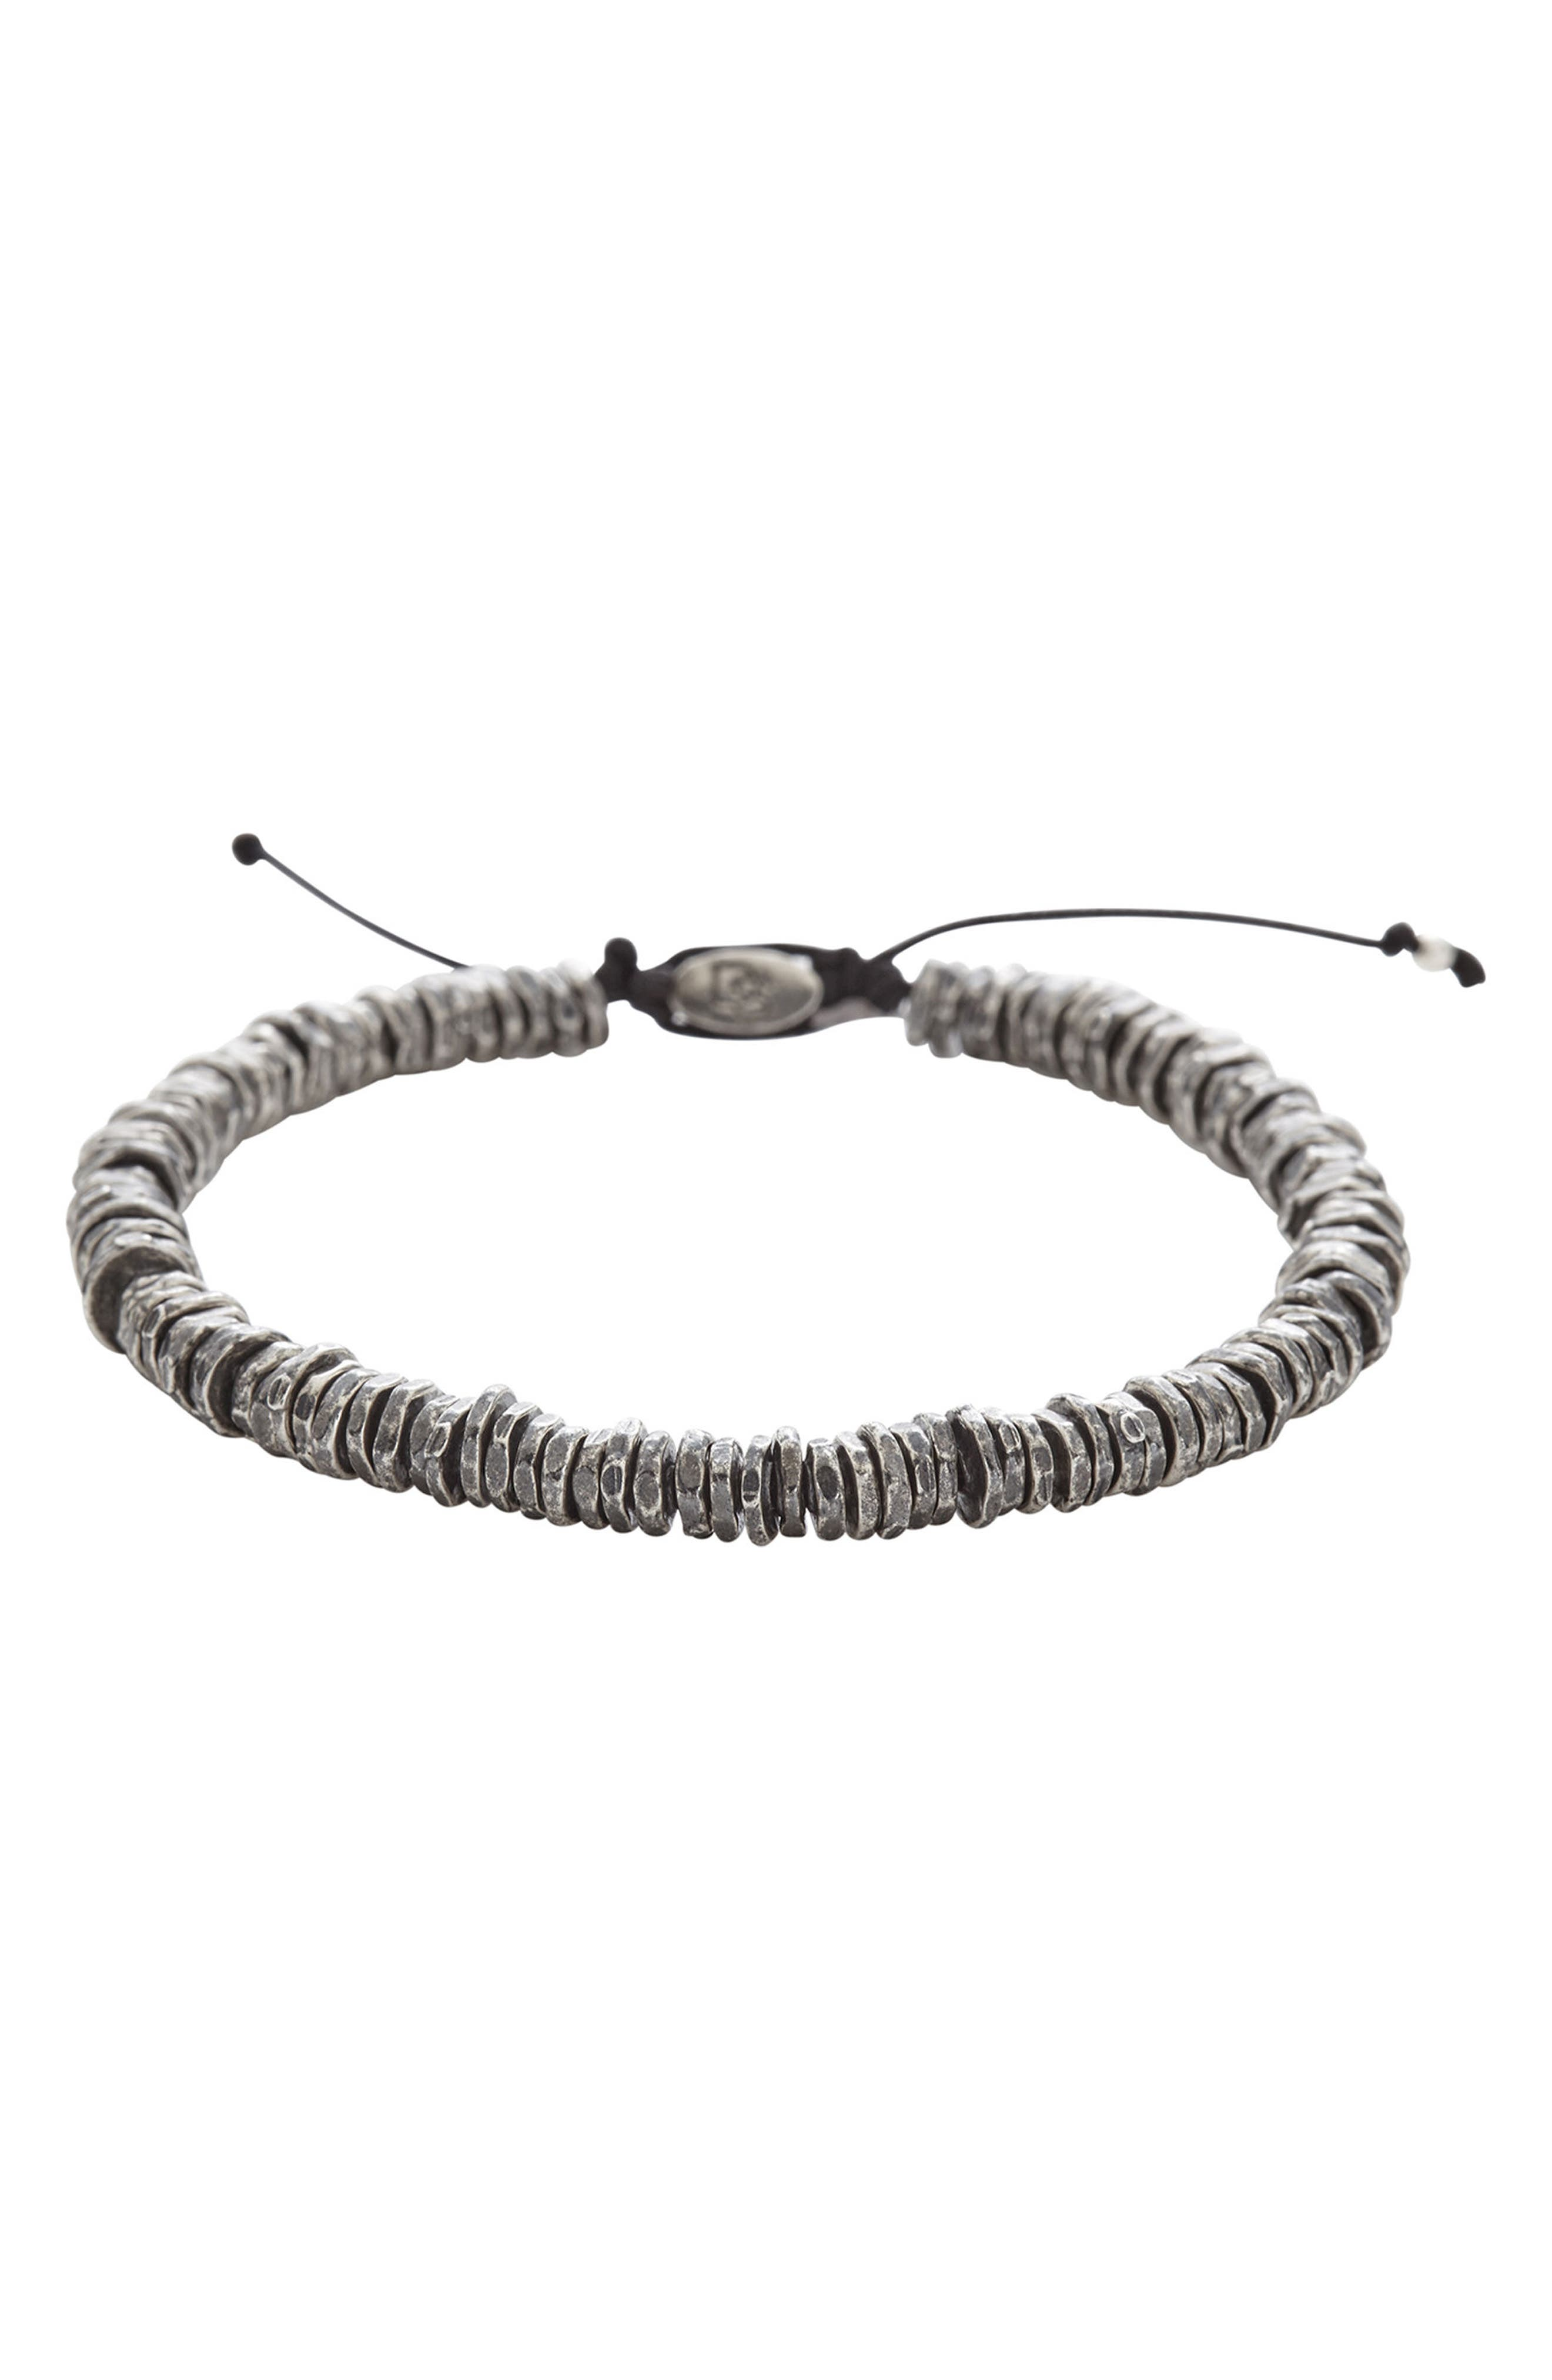 Washer Bead Bracelet,                         Main,                         color, Silver